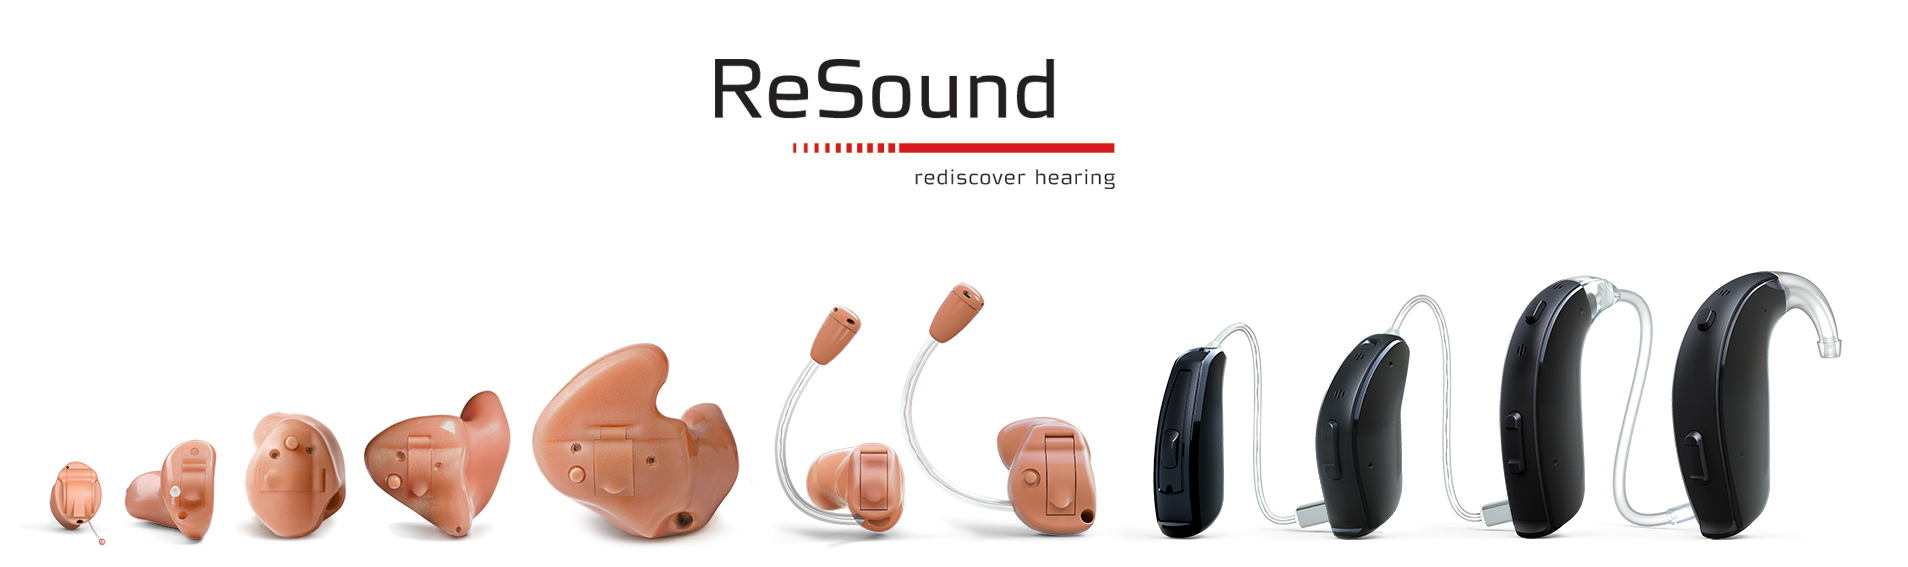 resound hearing aids.jpg